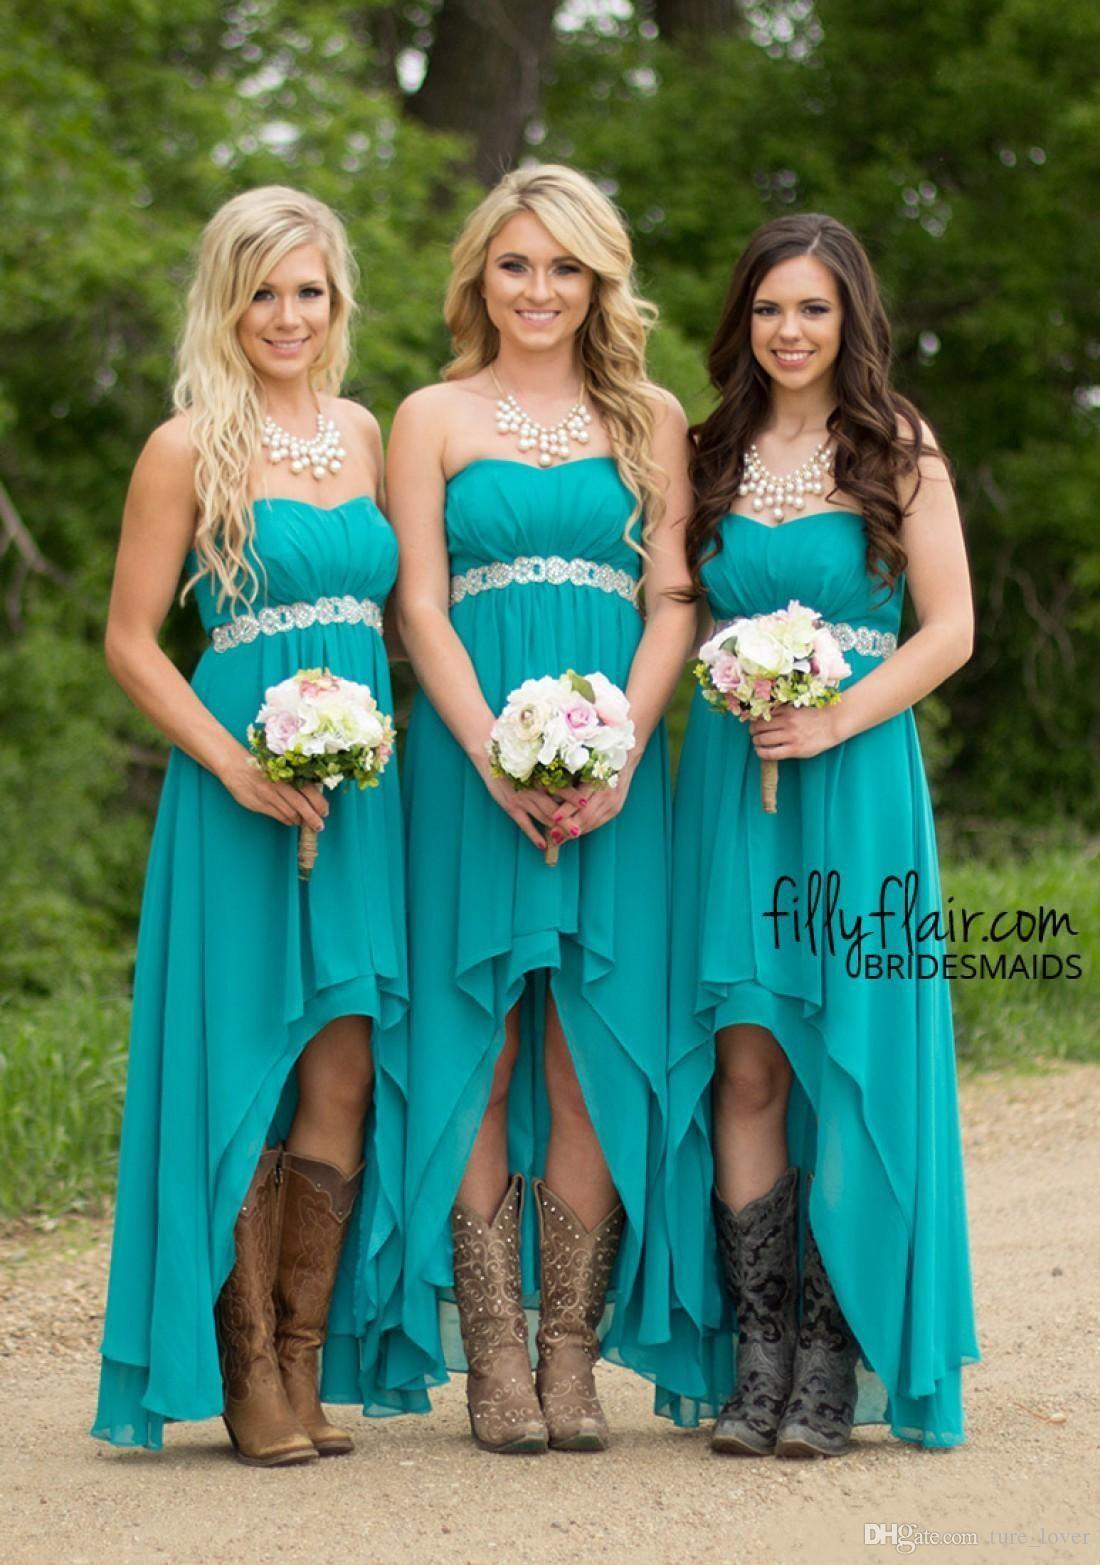 2016 new turquoise high low country style bridesmaid dresses 2016 new turquoise high low country style bridesmaid dresses strapless pleated cheap chiffon spring maid of honor gowns party dresses dark grey bridesmaid ombrellifo Choice Image